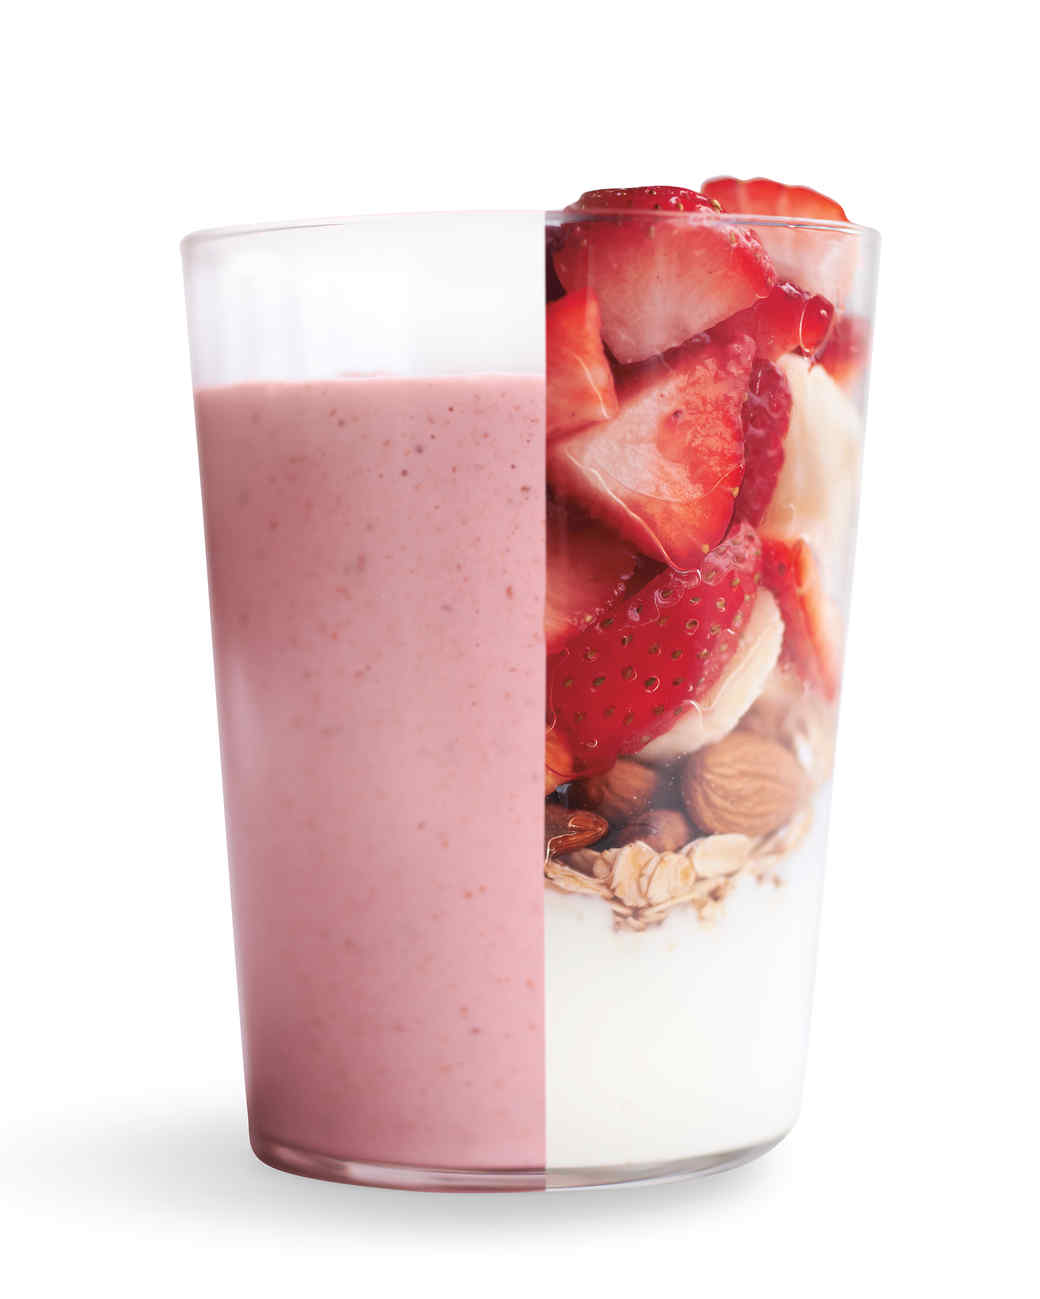 Our Top 10 Most-Pinned Smoothie Recipes